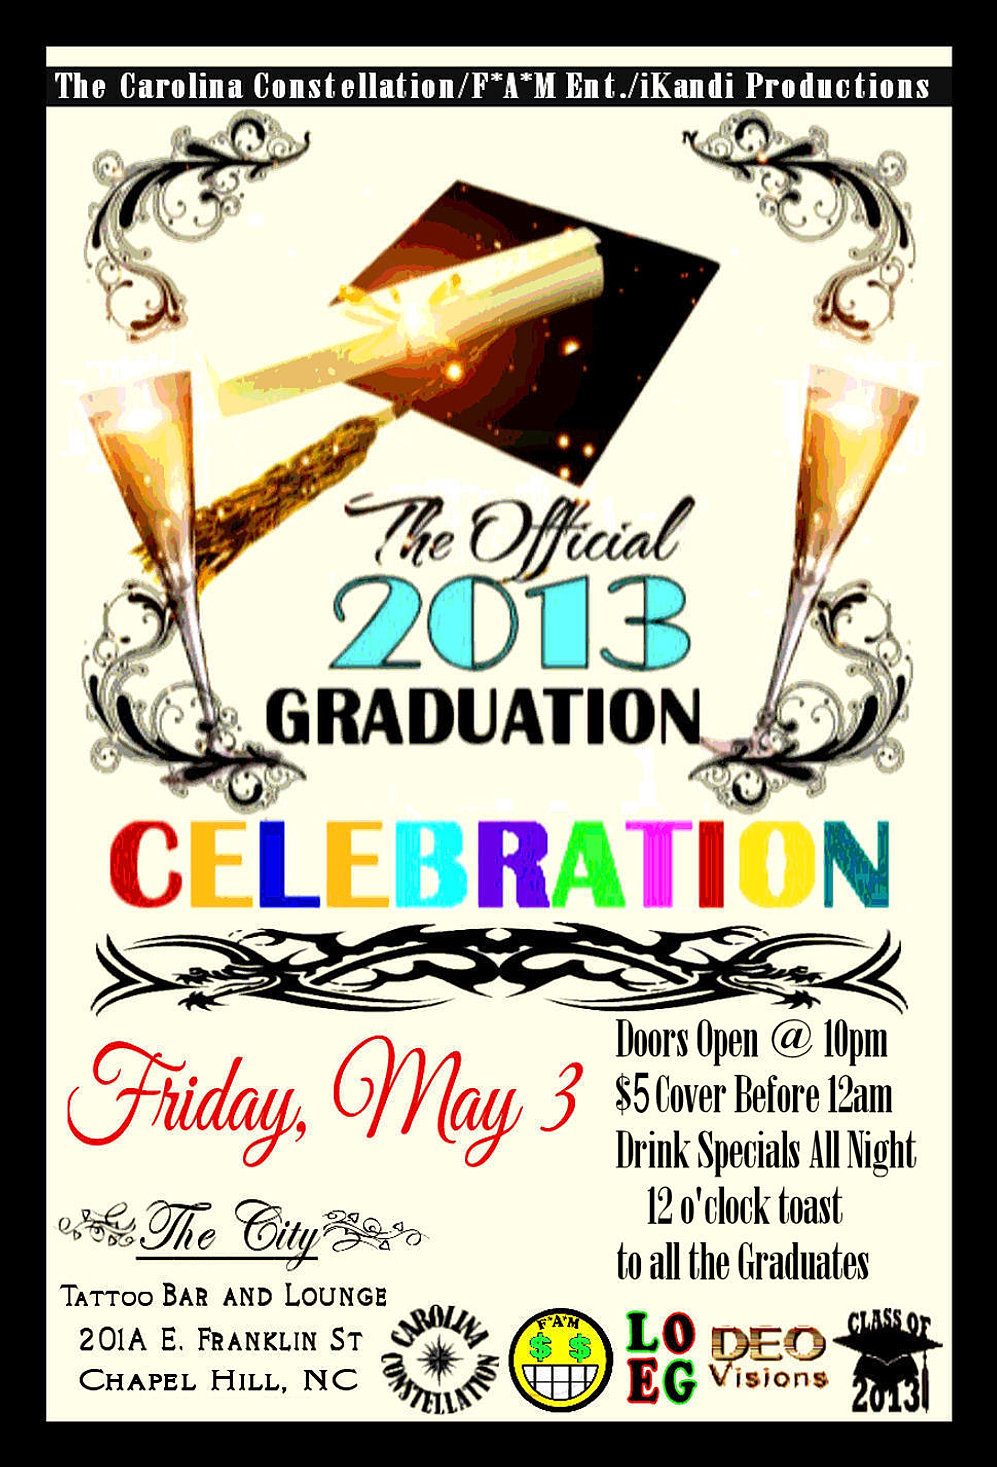 constellation imagery flyer designs sample flyers b2sflyerfinal1 b2sflyerfinal1 new graduation celebration front 4x6 jpg